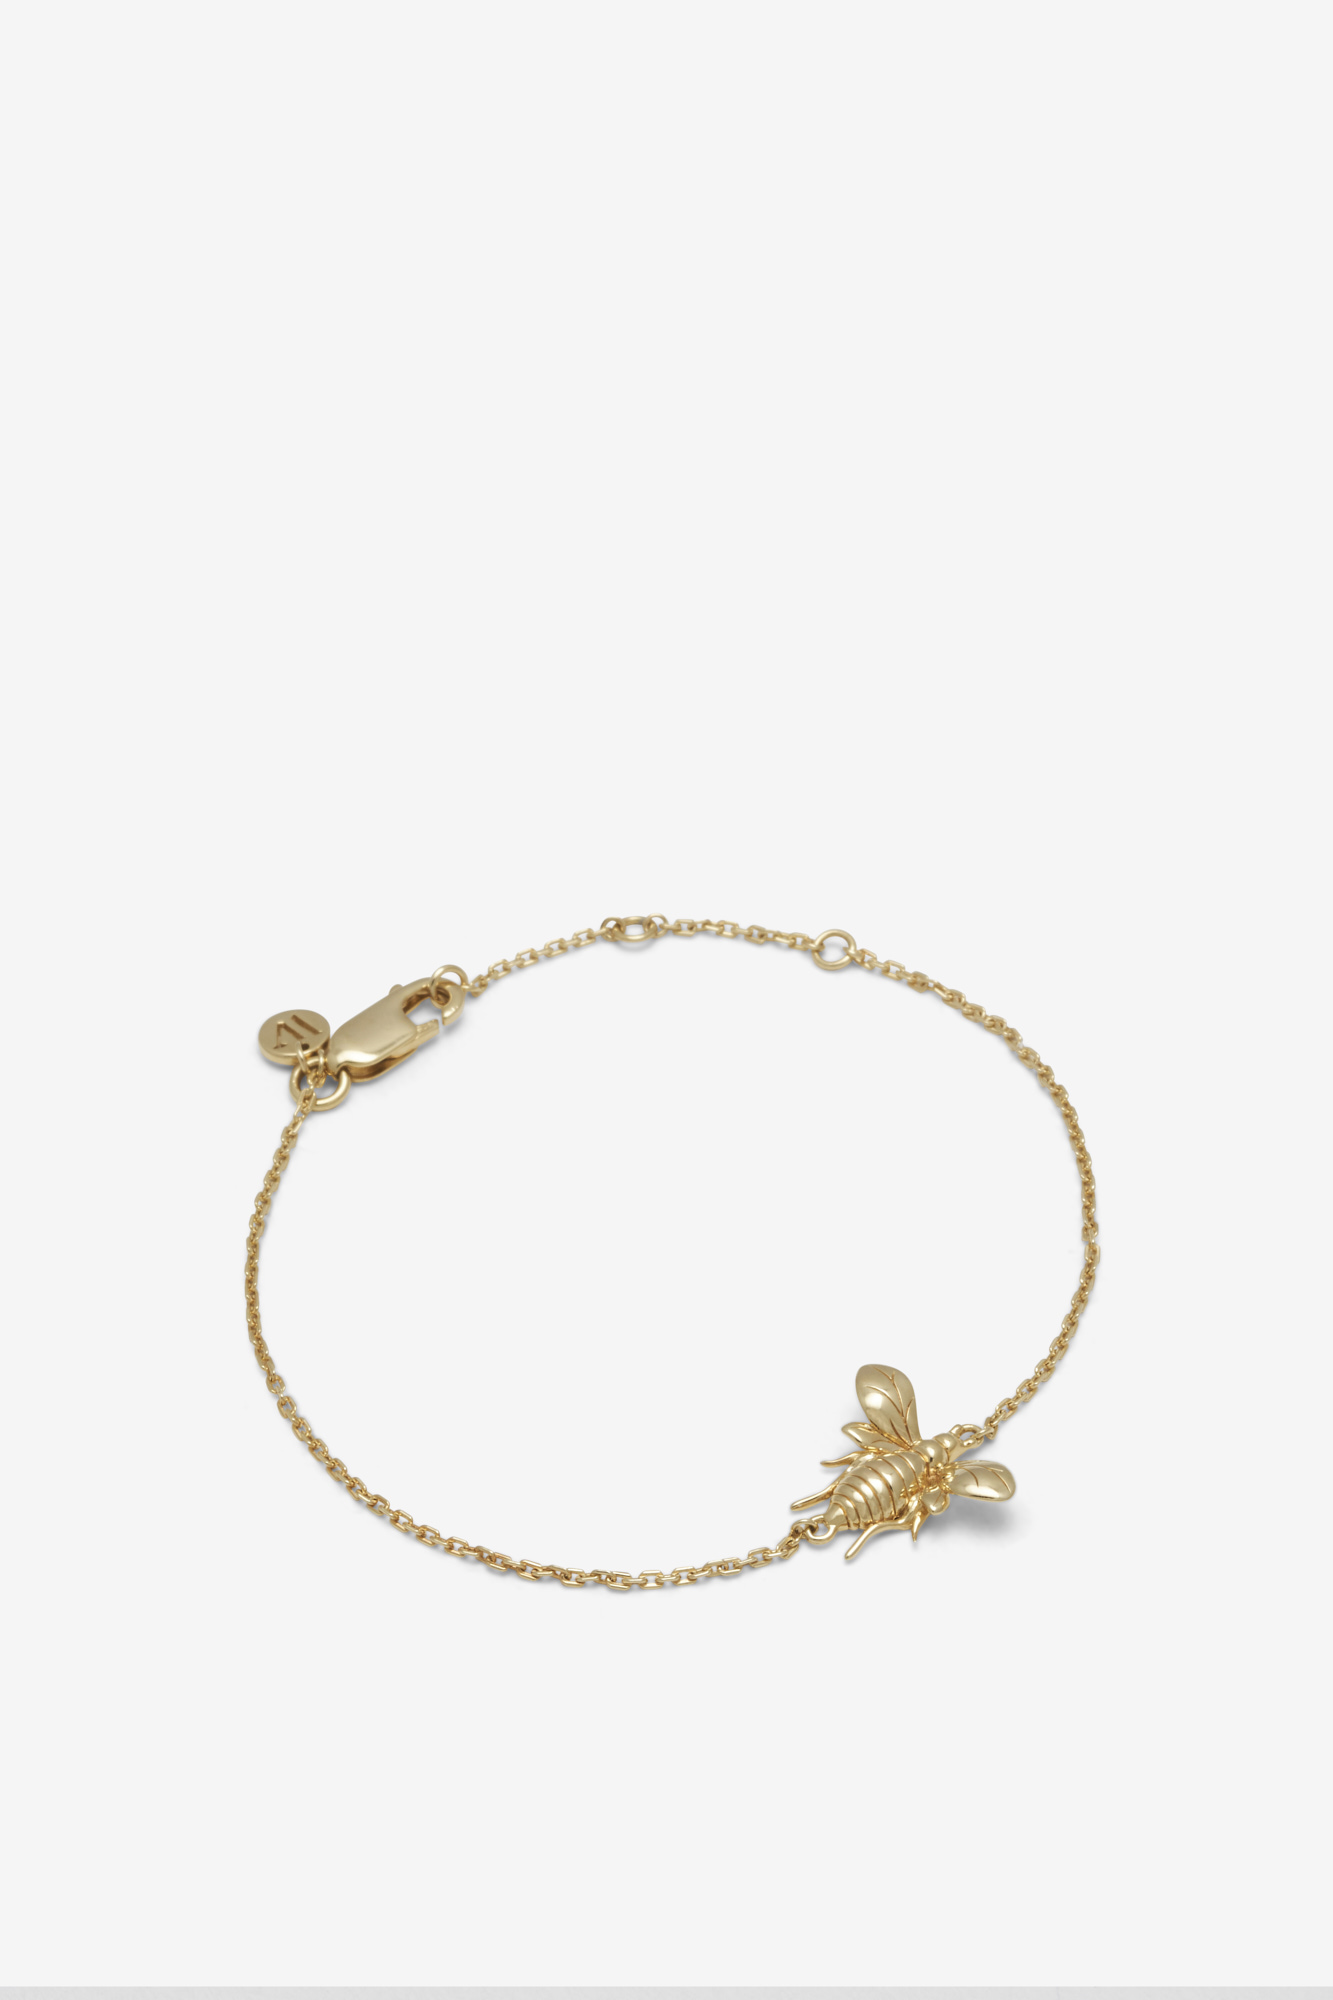 19-03-5-1-004-113-12_Bee Bracelet_Gold Plated_04